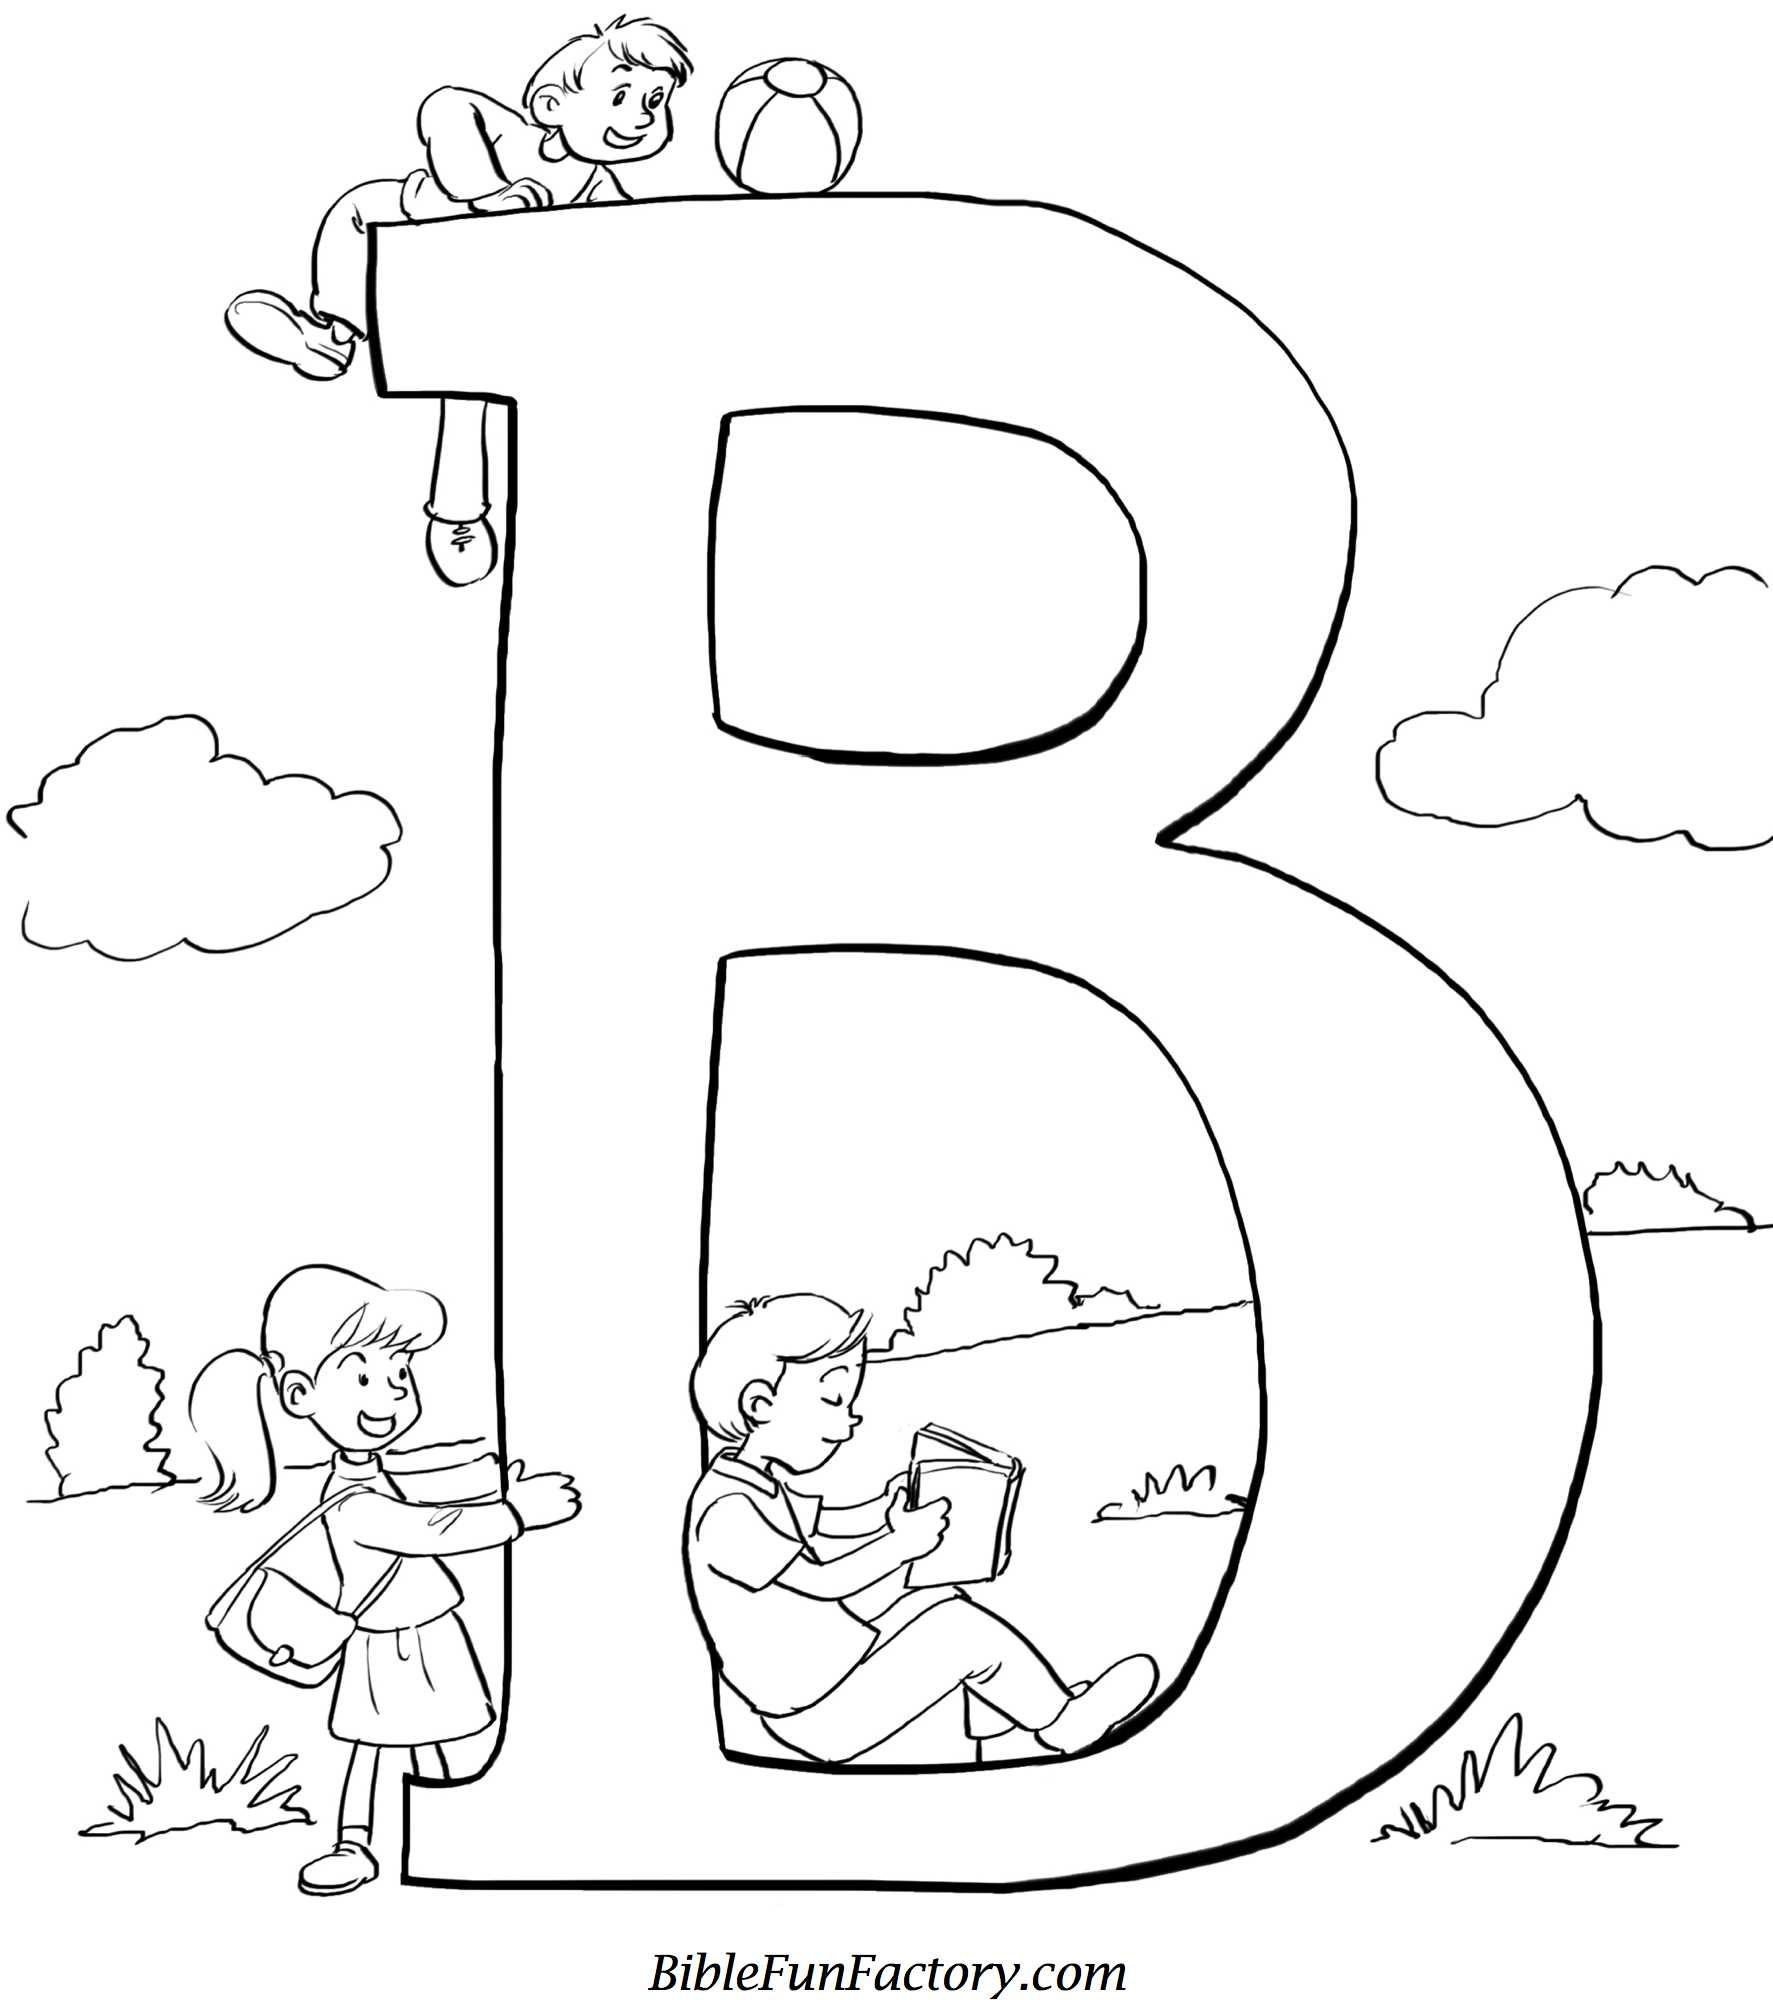 picture relating to Free Printable Bible Games named Absolutely free Printable Bible Coloring Webpages For Preschoolers at